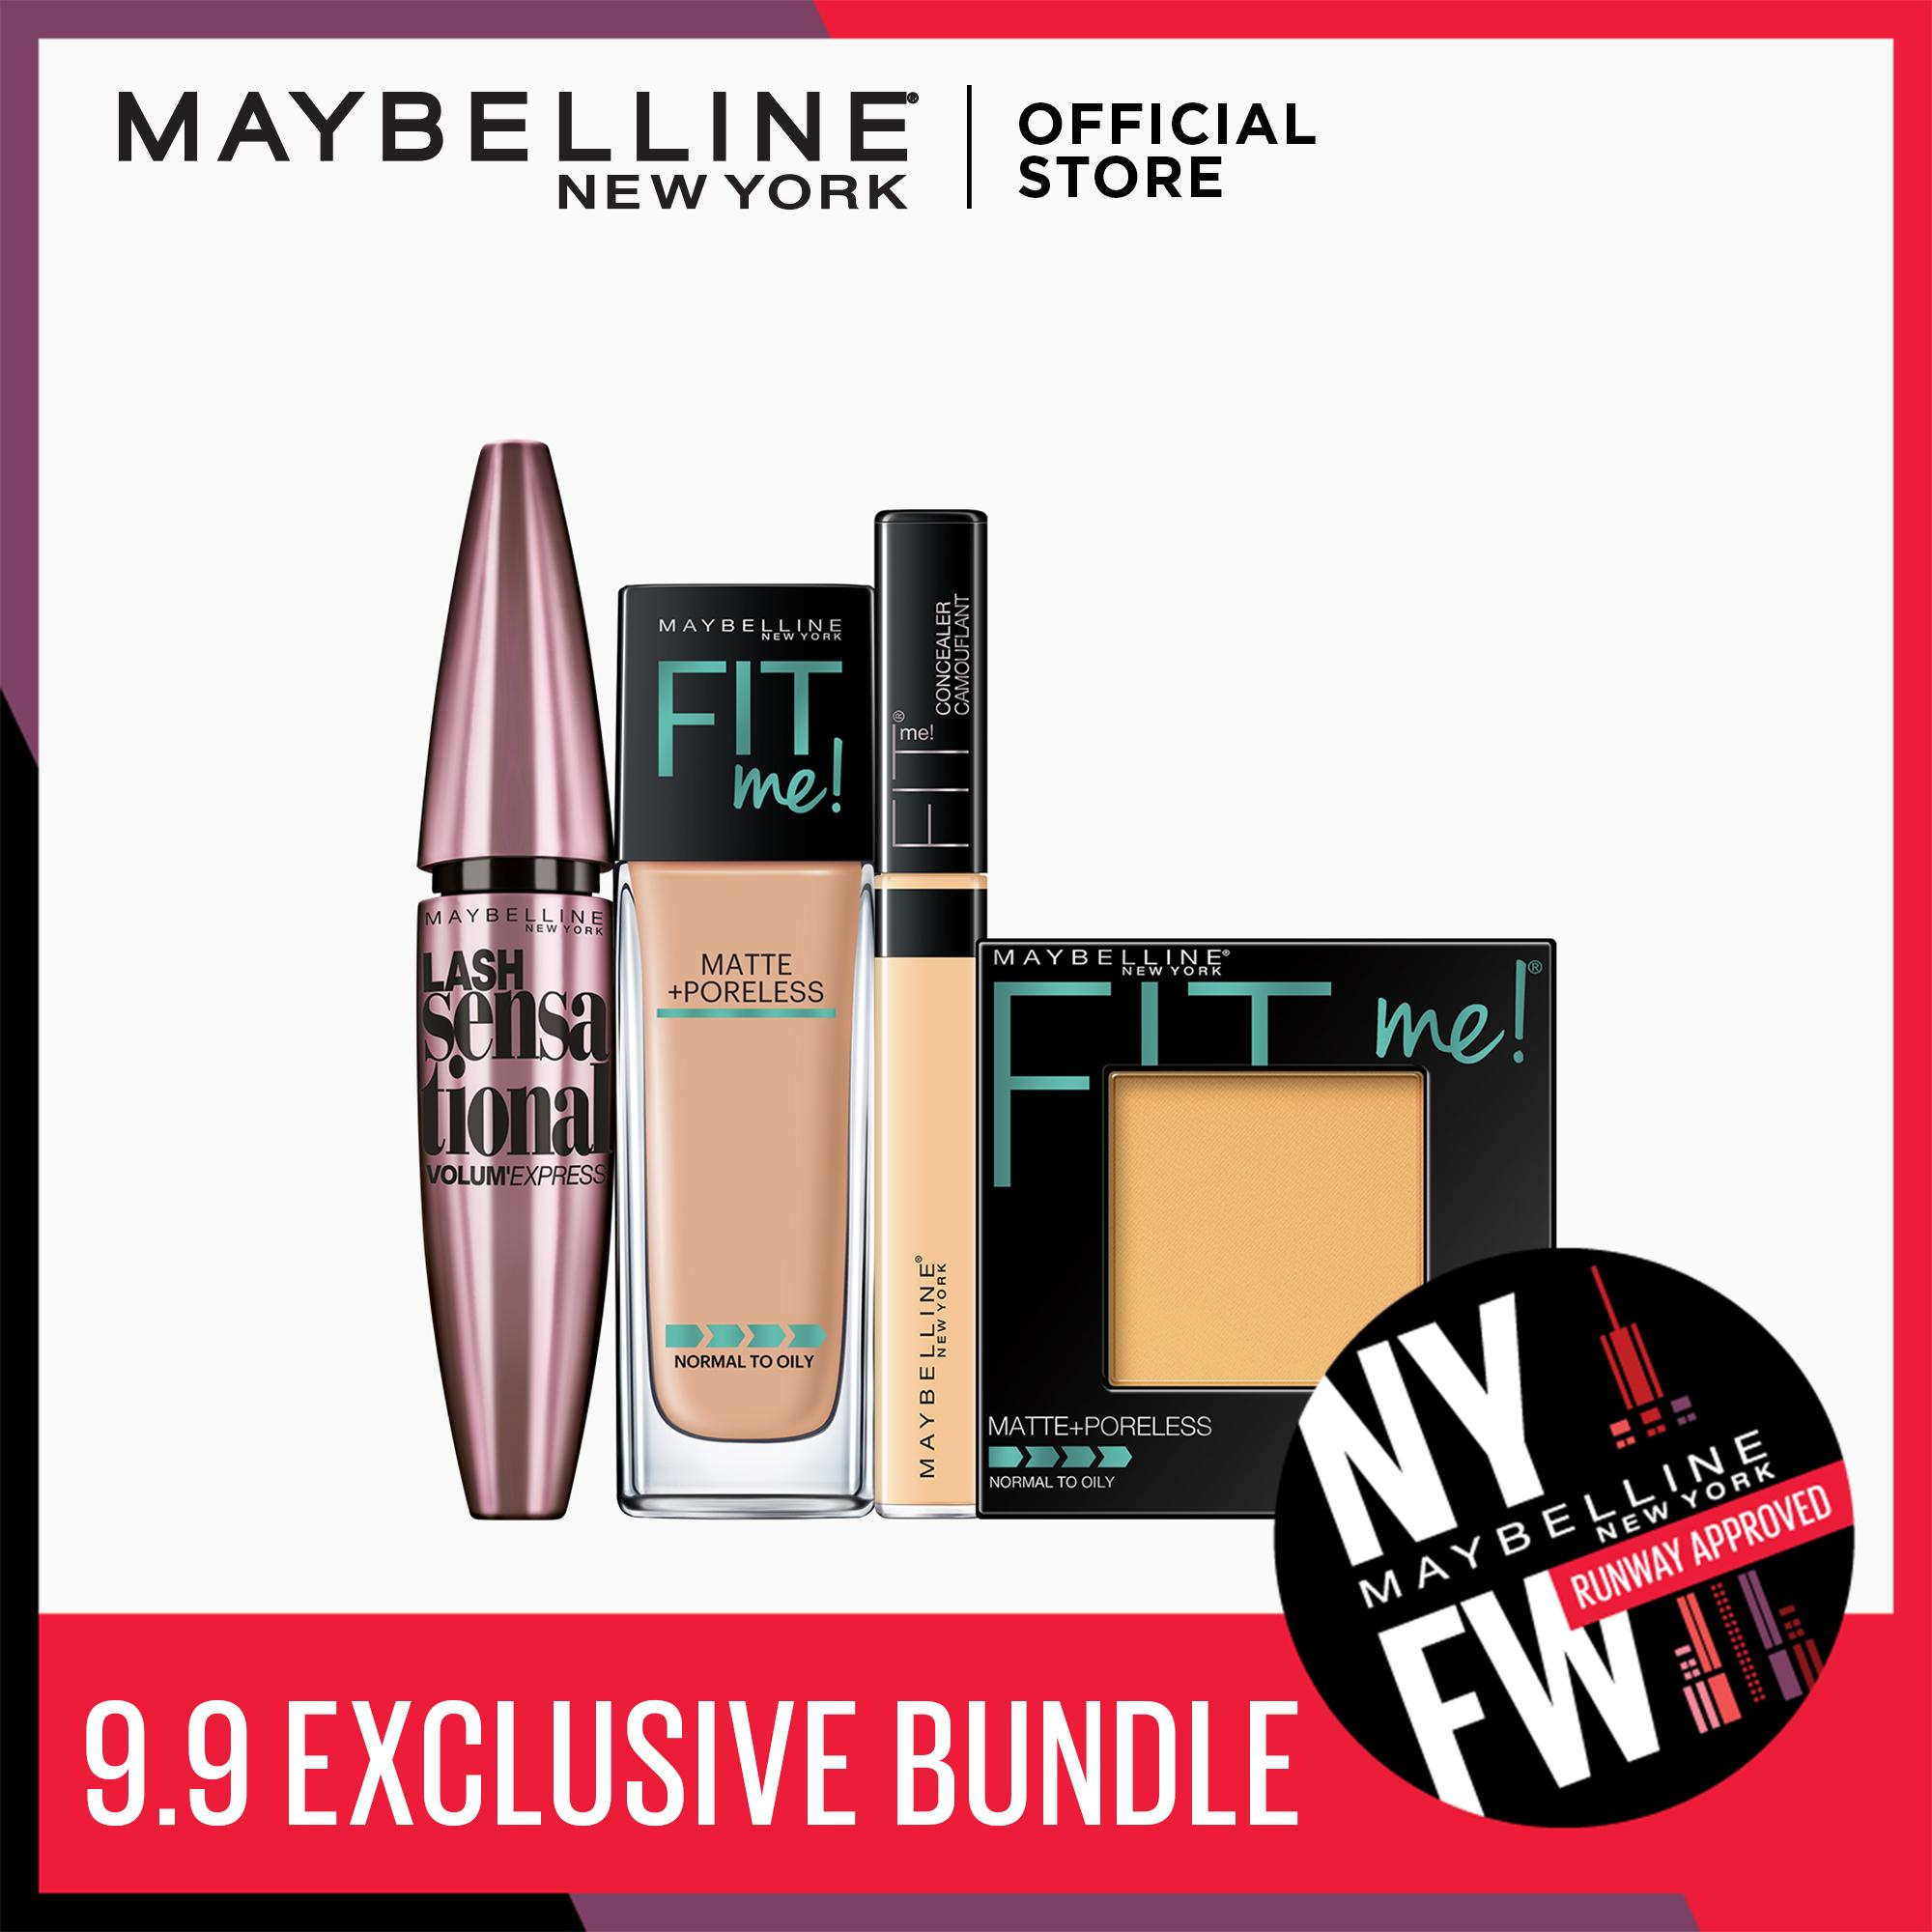 I Found My Fit: 220 Foundation + 220 Powder + 25 Concealer + Lash Sensational by Maybelline Fit Me Philippines